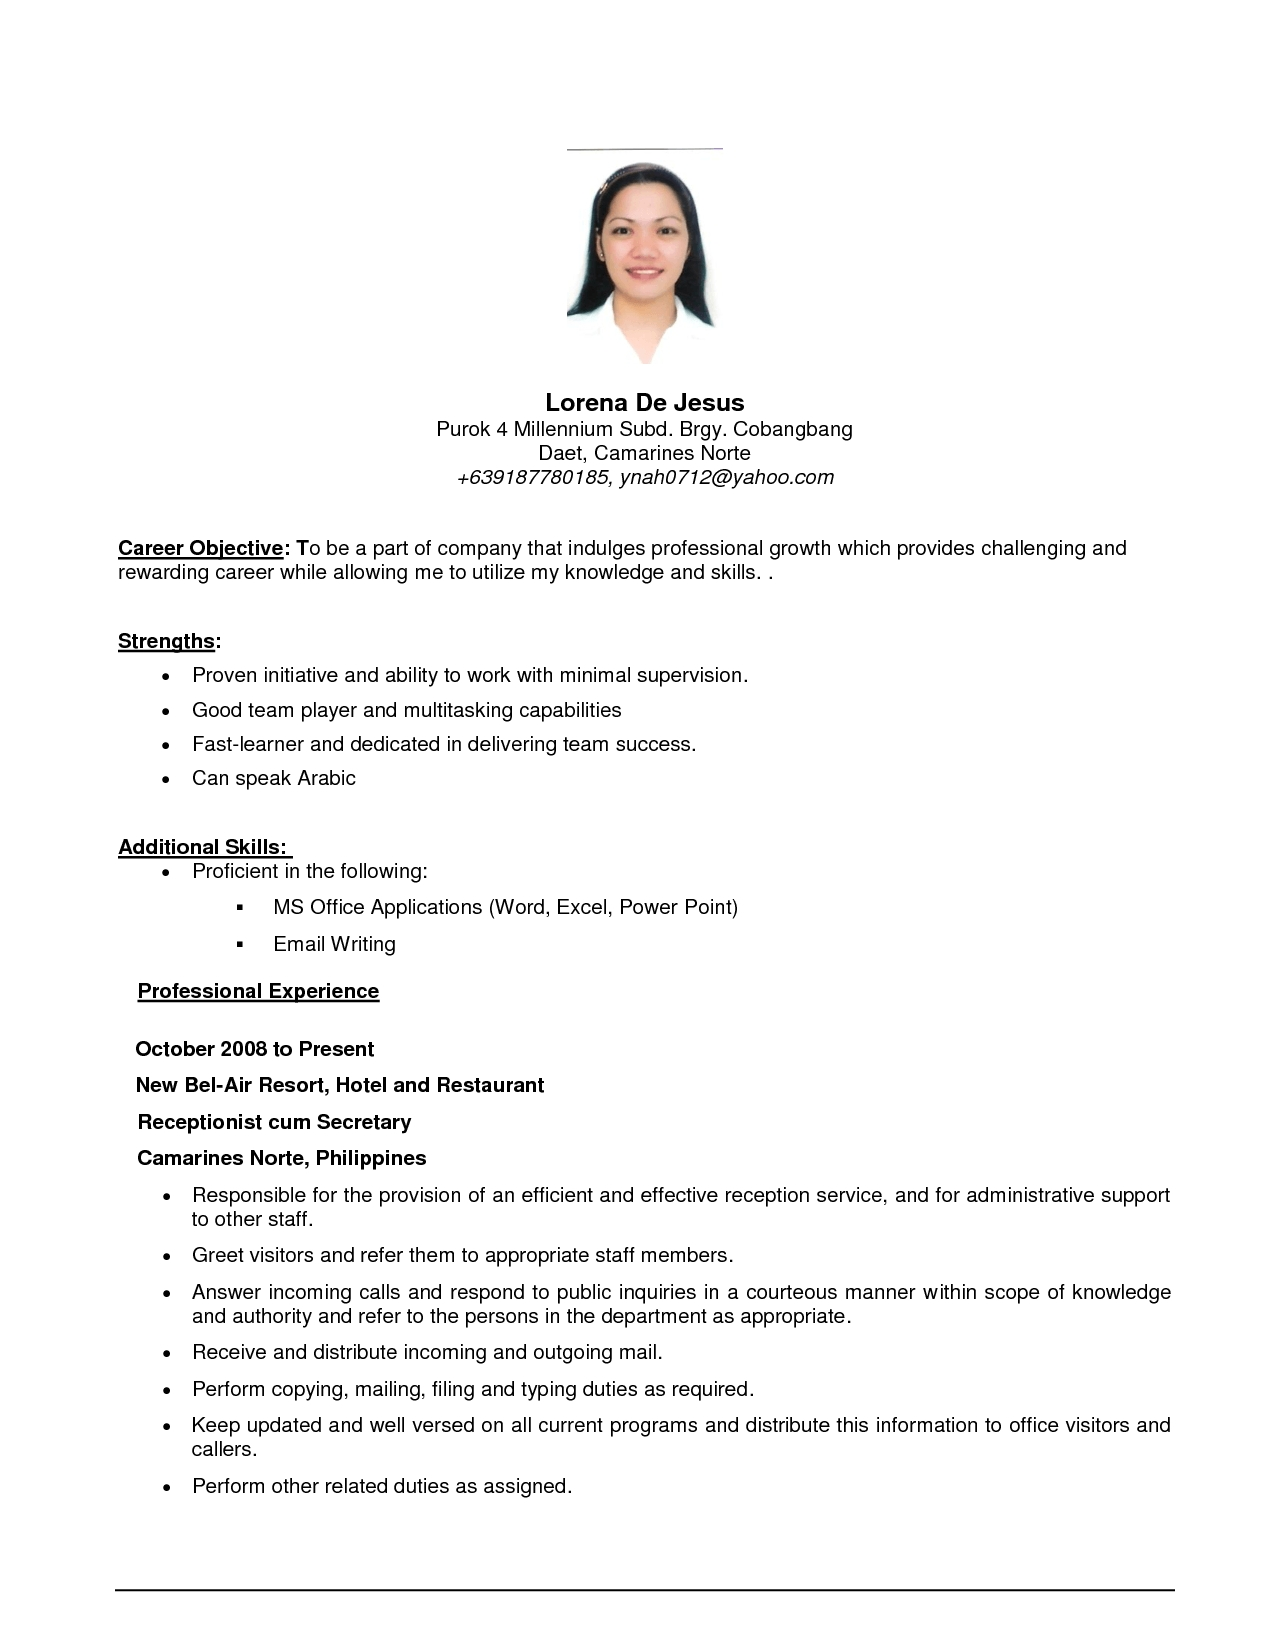 Simple Objective For Resume - jmckell.Com